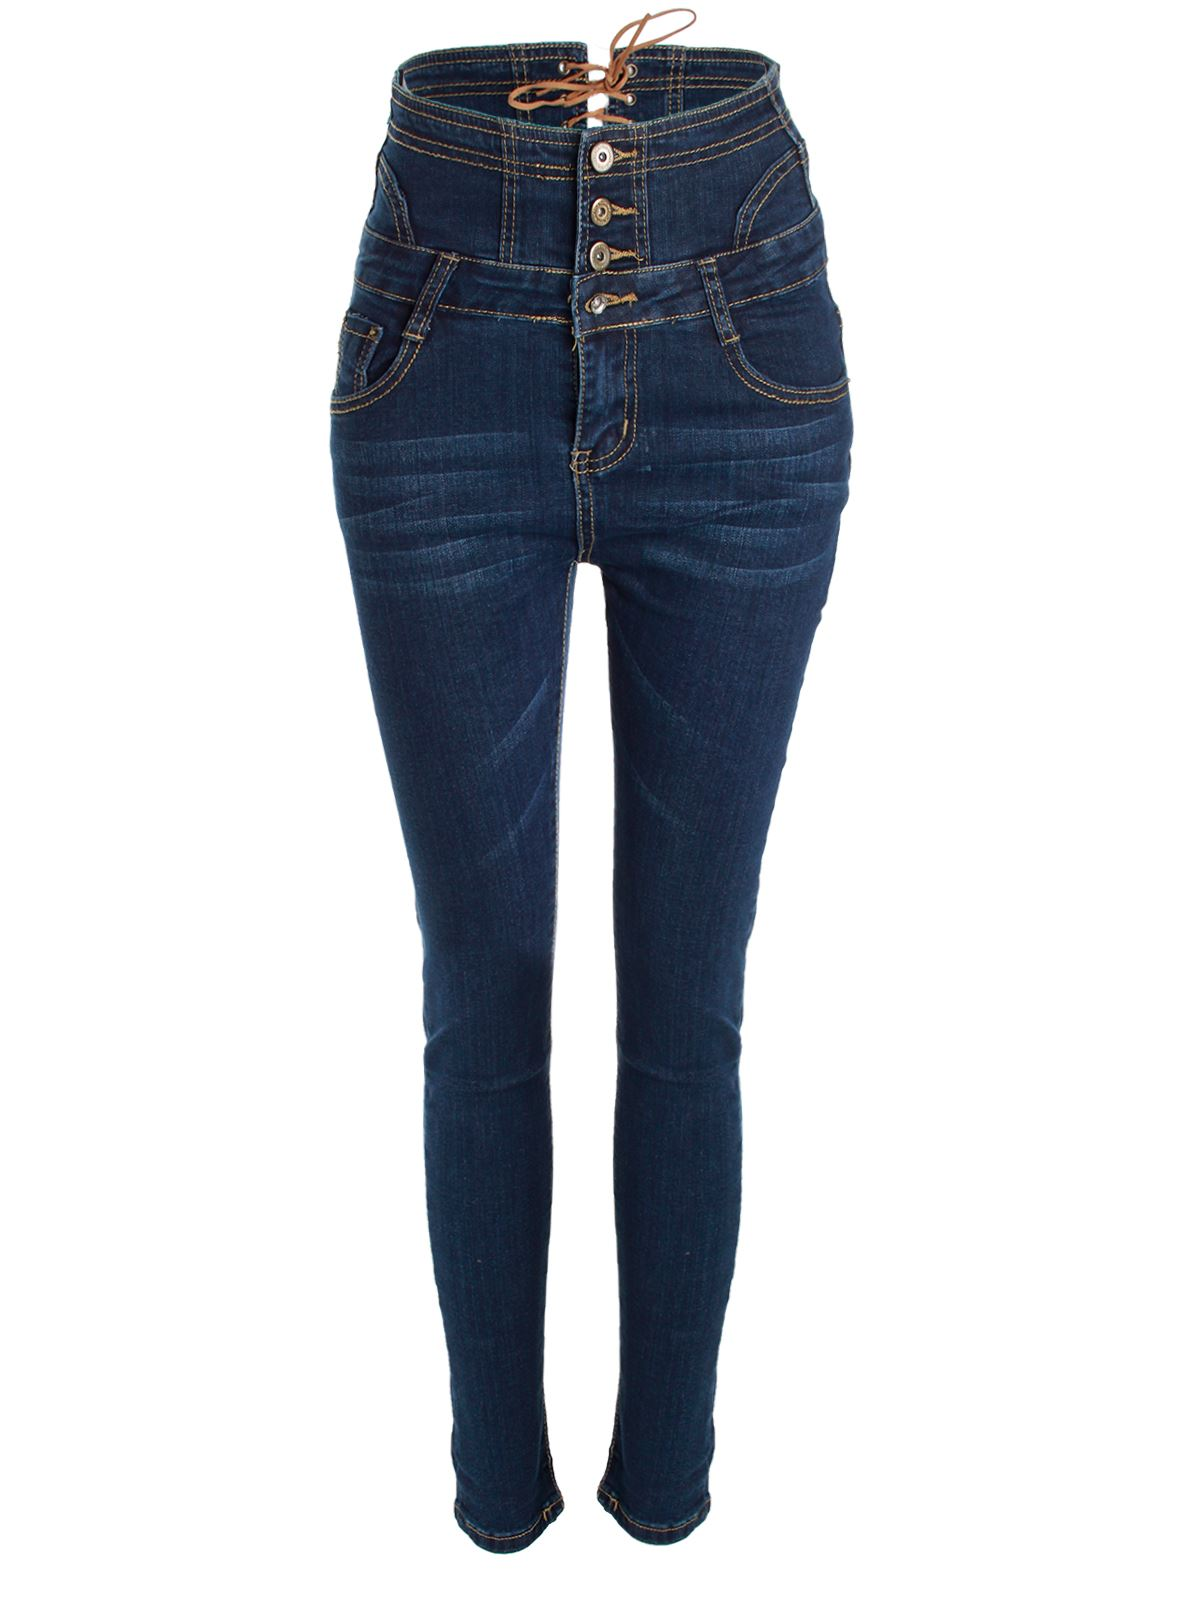 new womens ladies skinny high waisted lace back jeans denim button trouser pants ebay. Black Bedroom Furniture Sets. Home Design Ideas